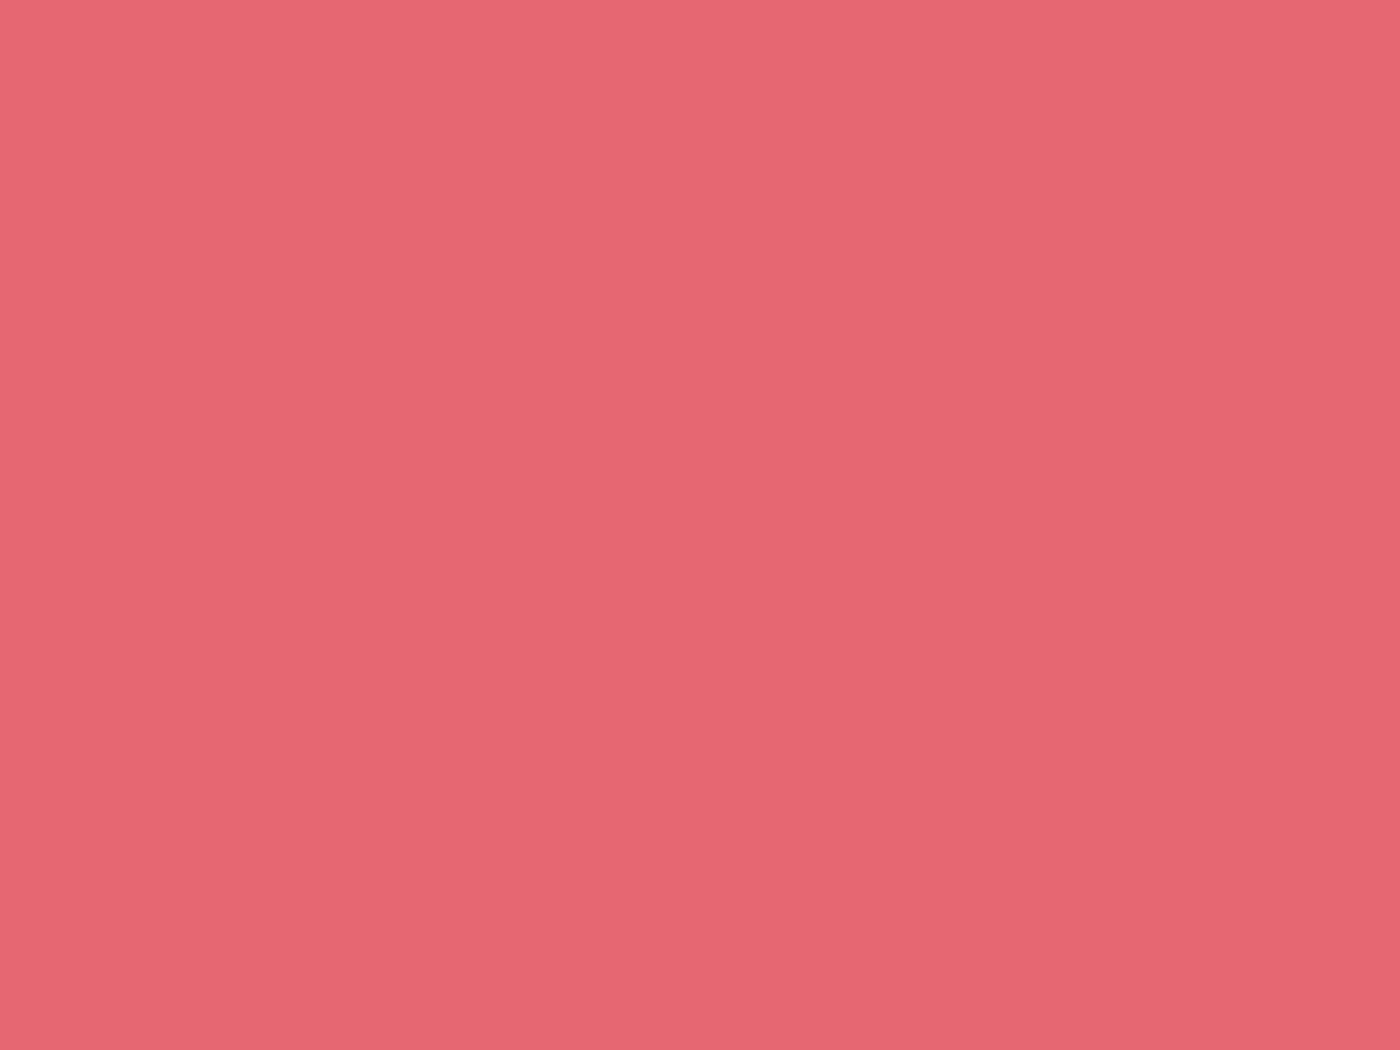 1400x1050 Light Carmine Pink Solid Color Background